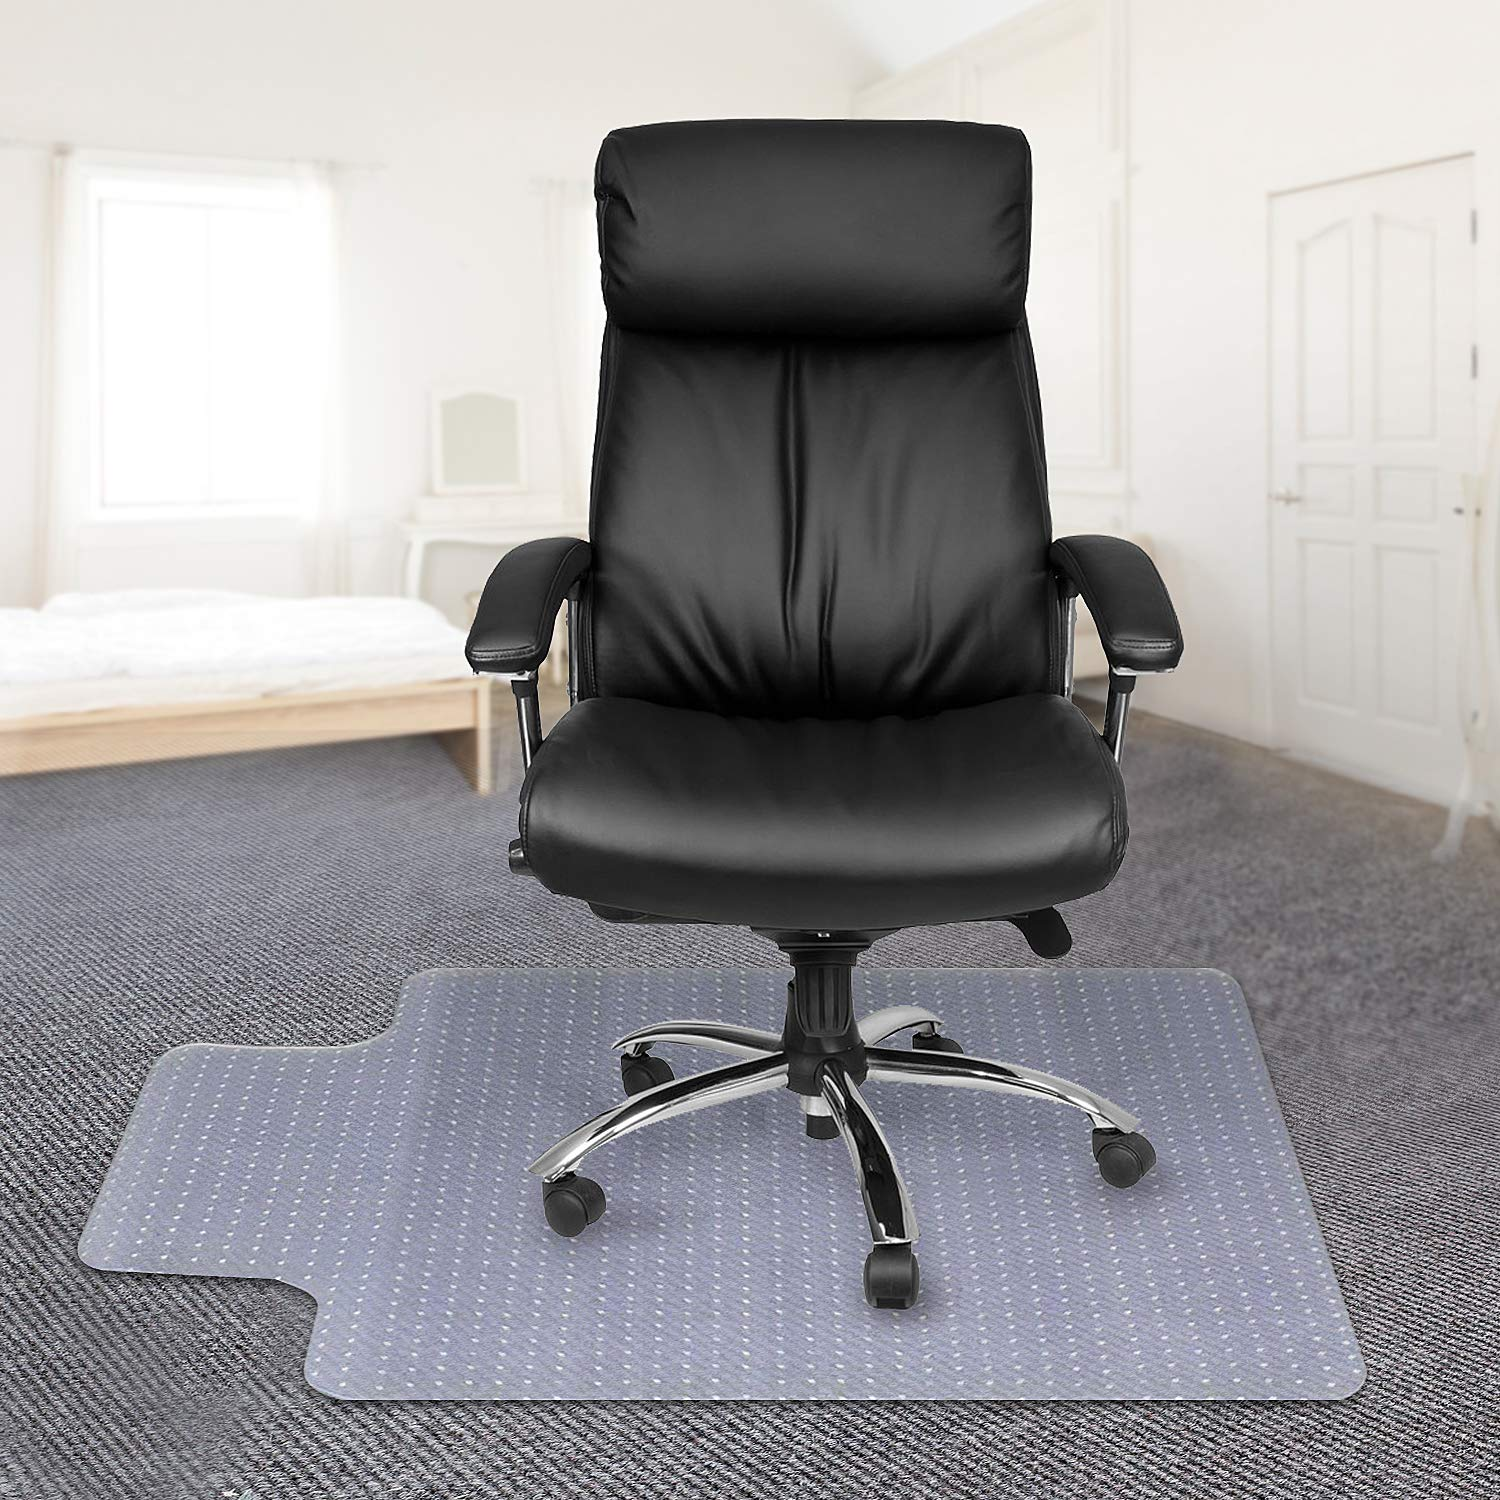 Kuyal Office Chair Mat for Carpets,Transparent Thick and Sturdy Highly Premium Quality Floor Mats for Low and Medium Pile Carpets, with Studs (30'' X 48'' with Lip)